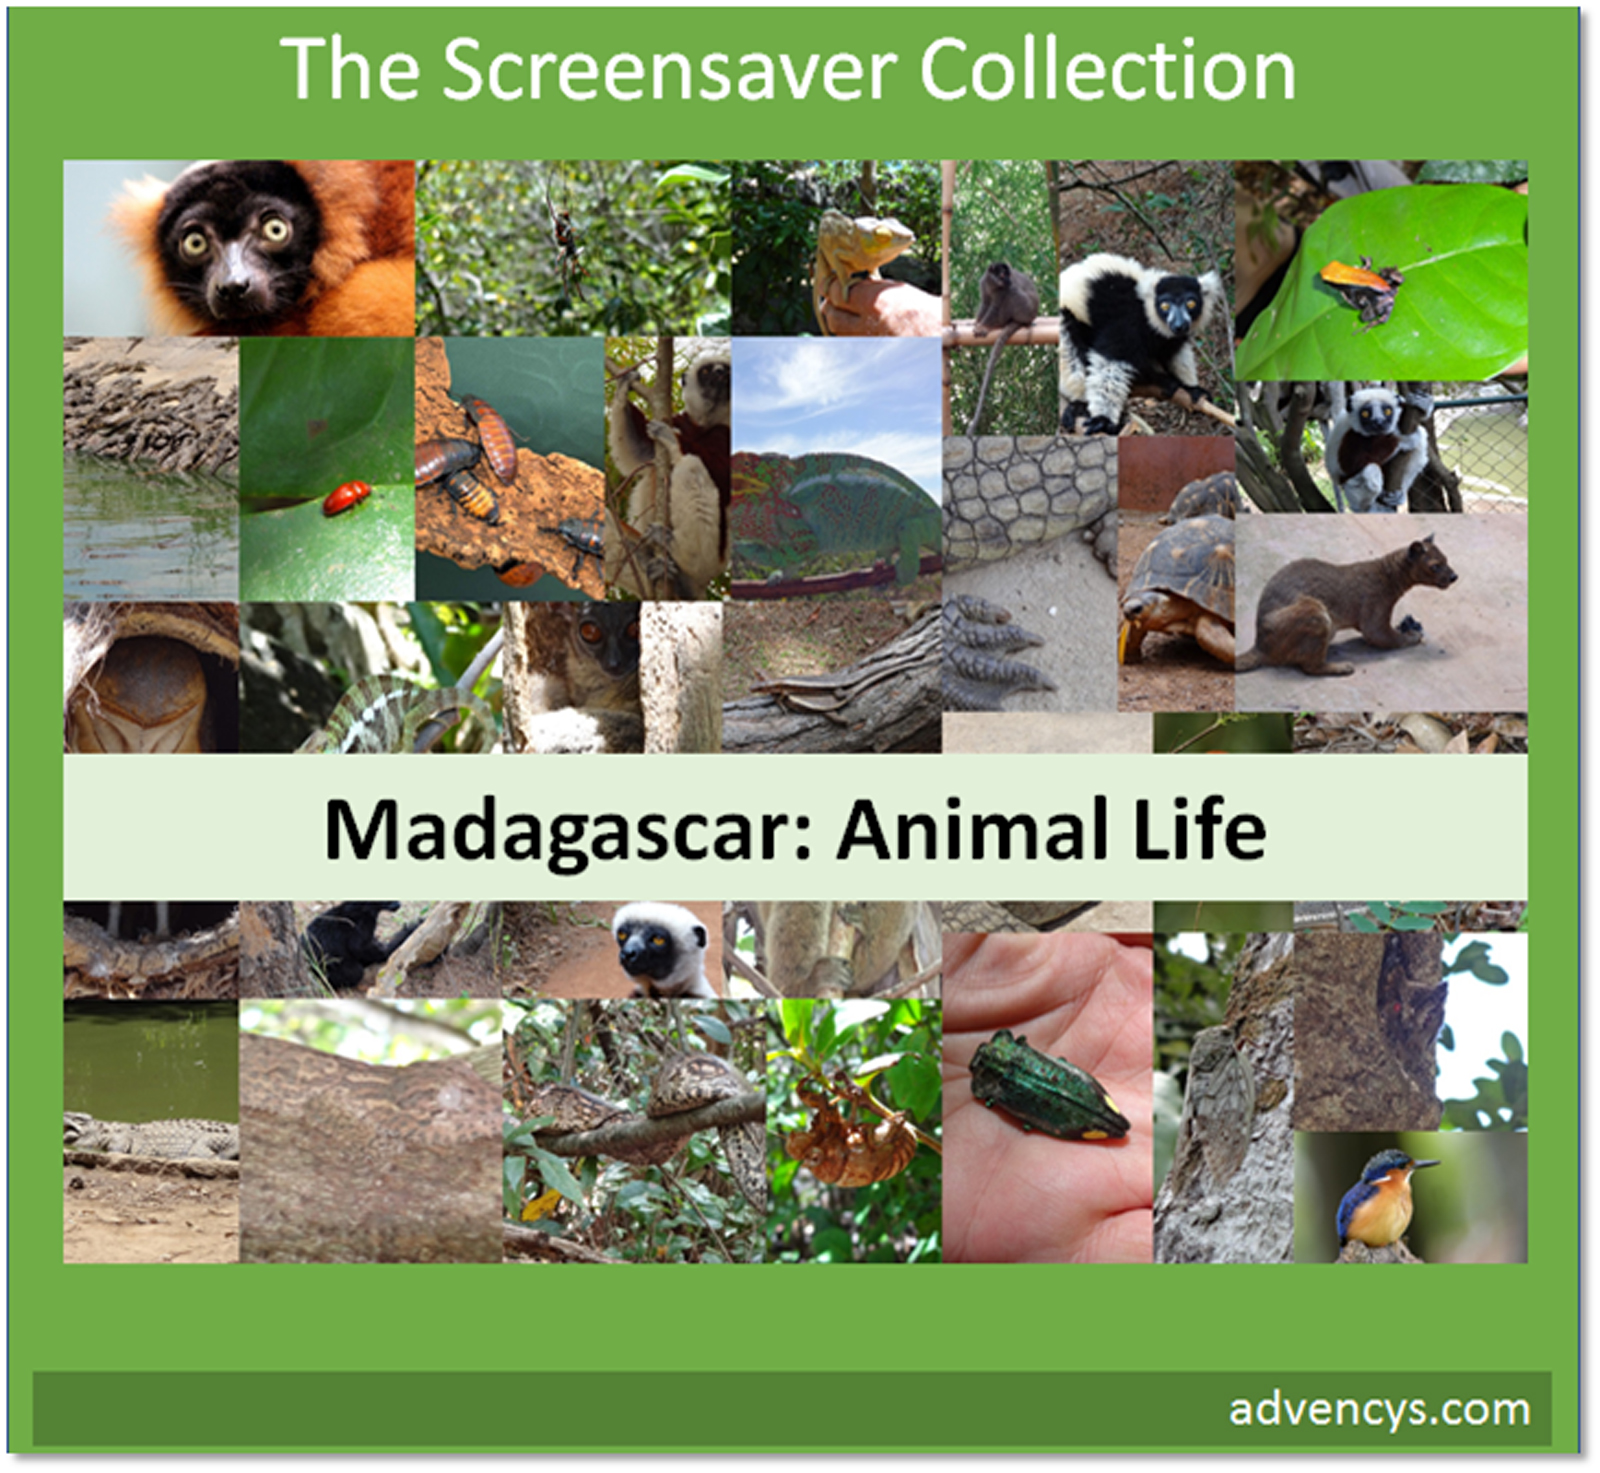 madagascar-animal-life-screensaver-telechargement